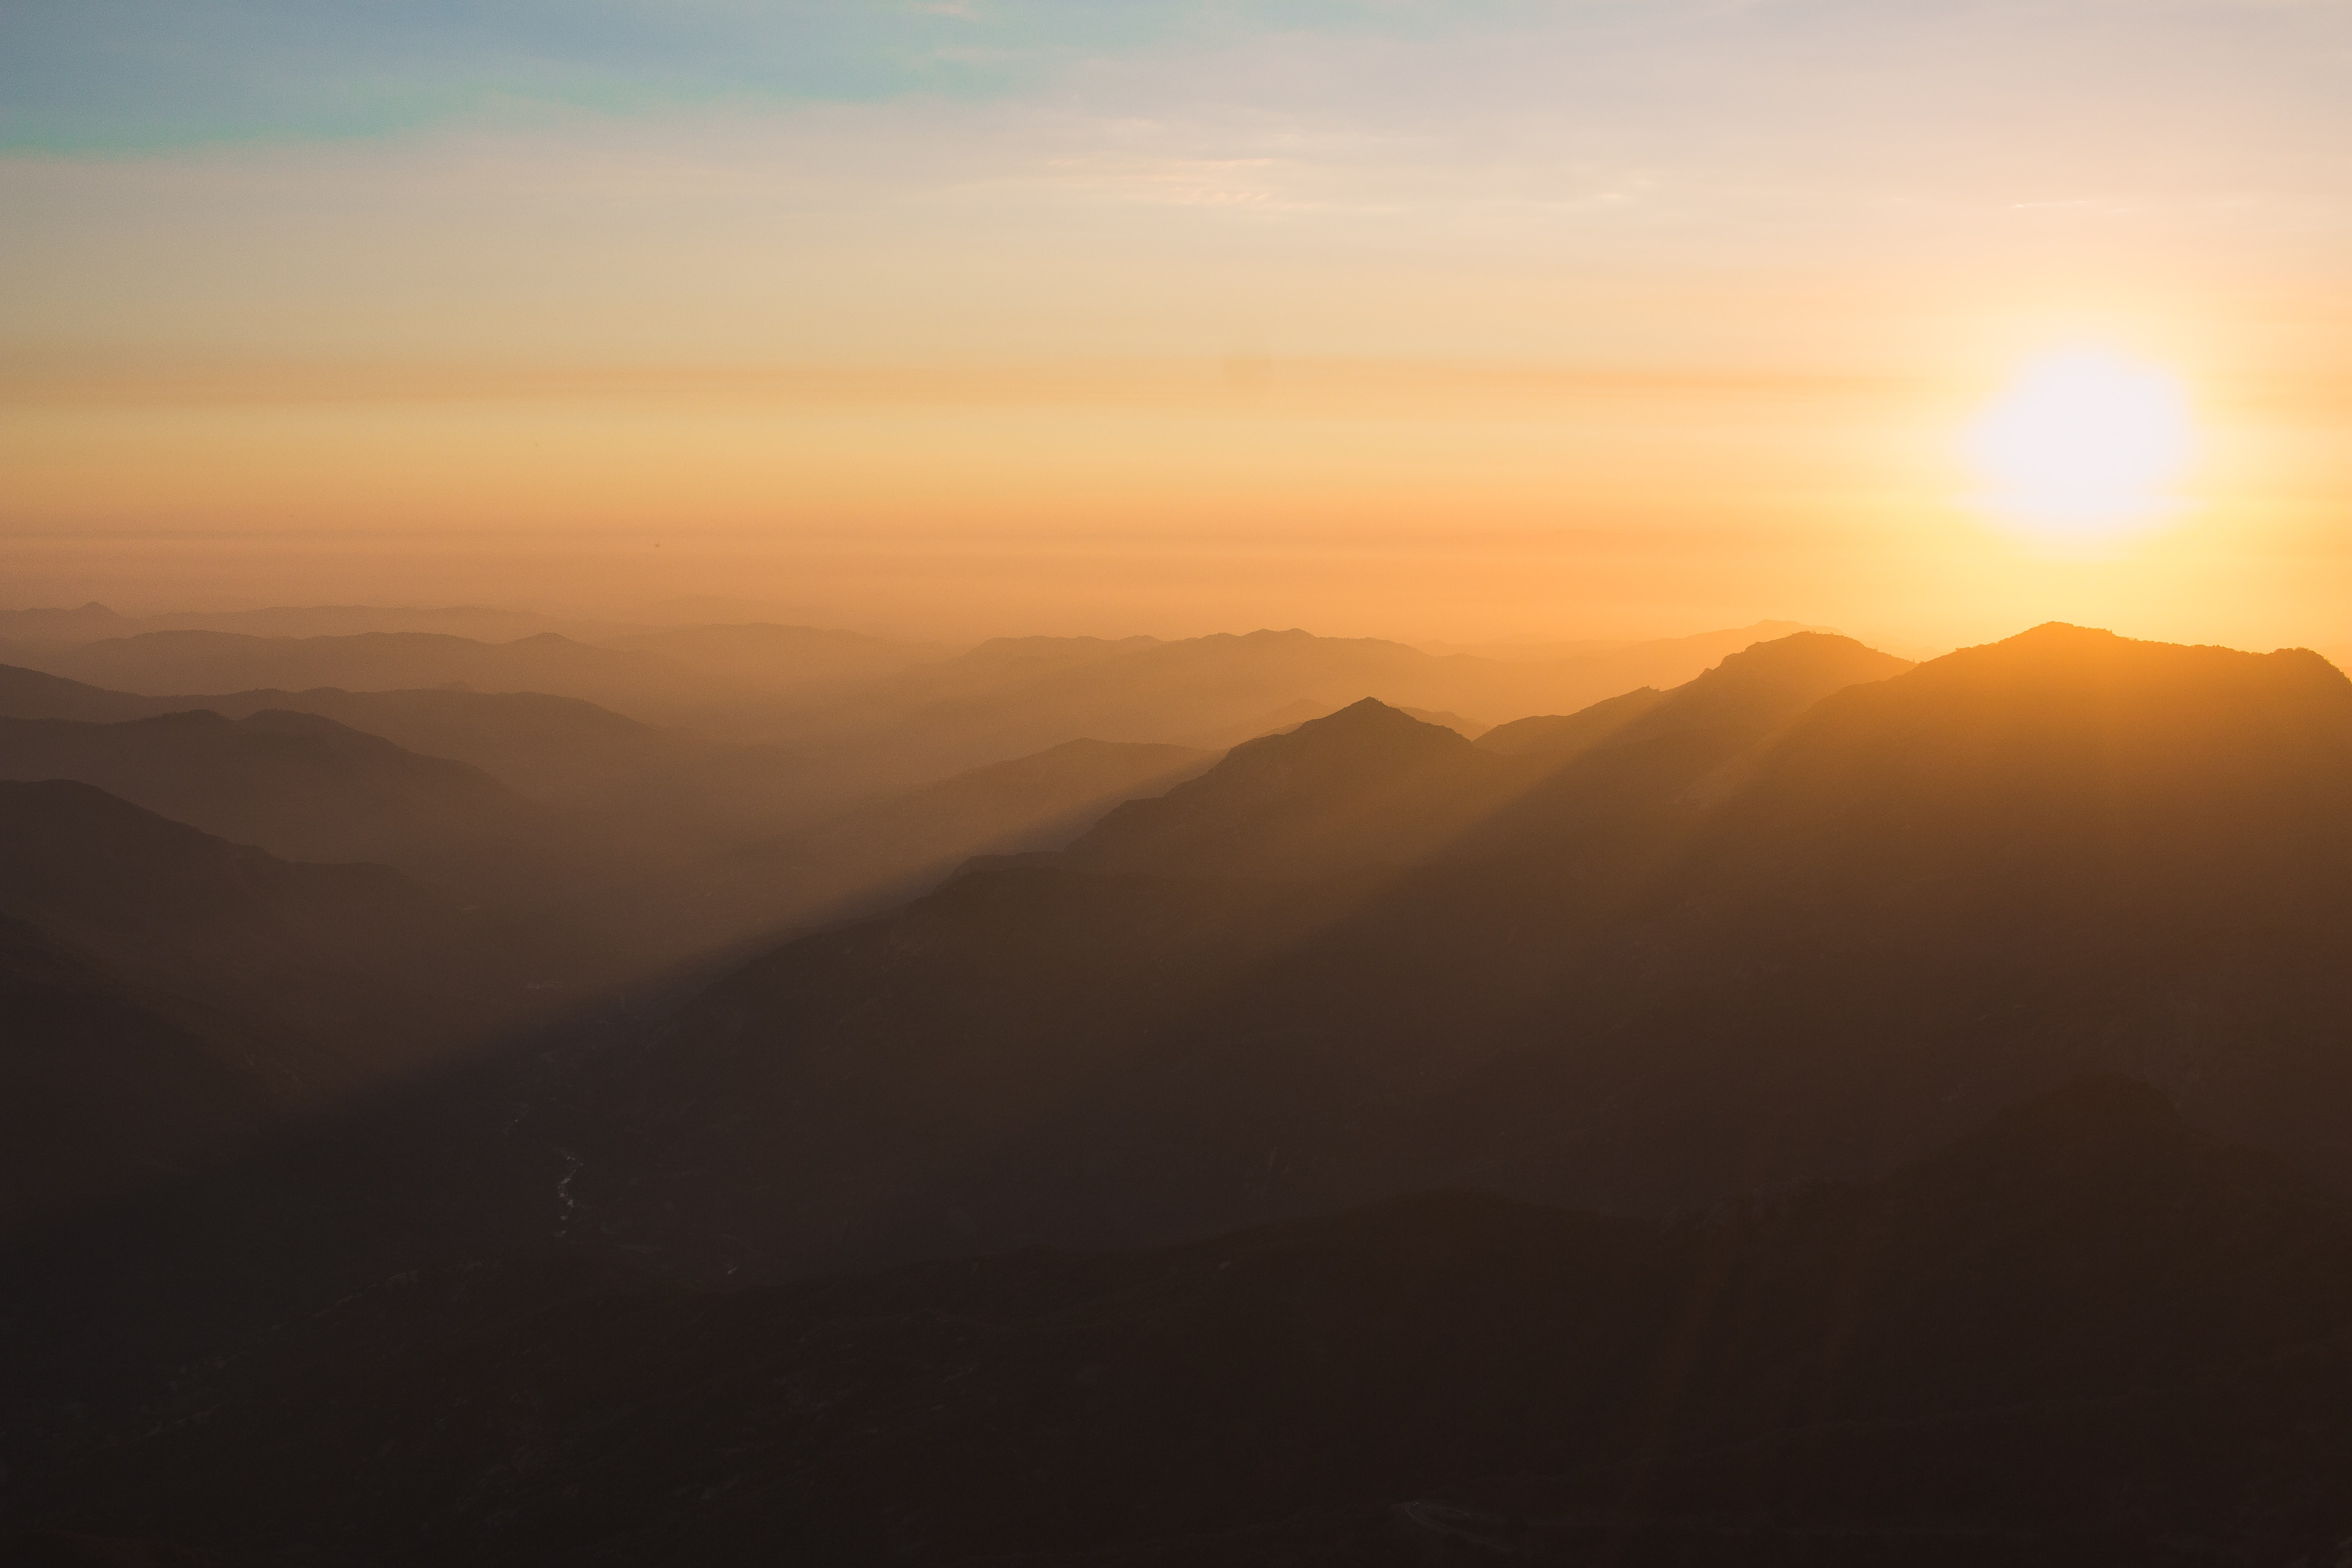 landscape photography of mountains during sunset